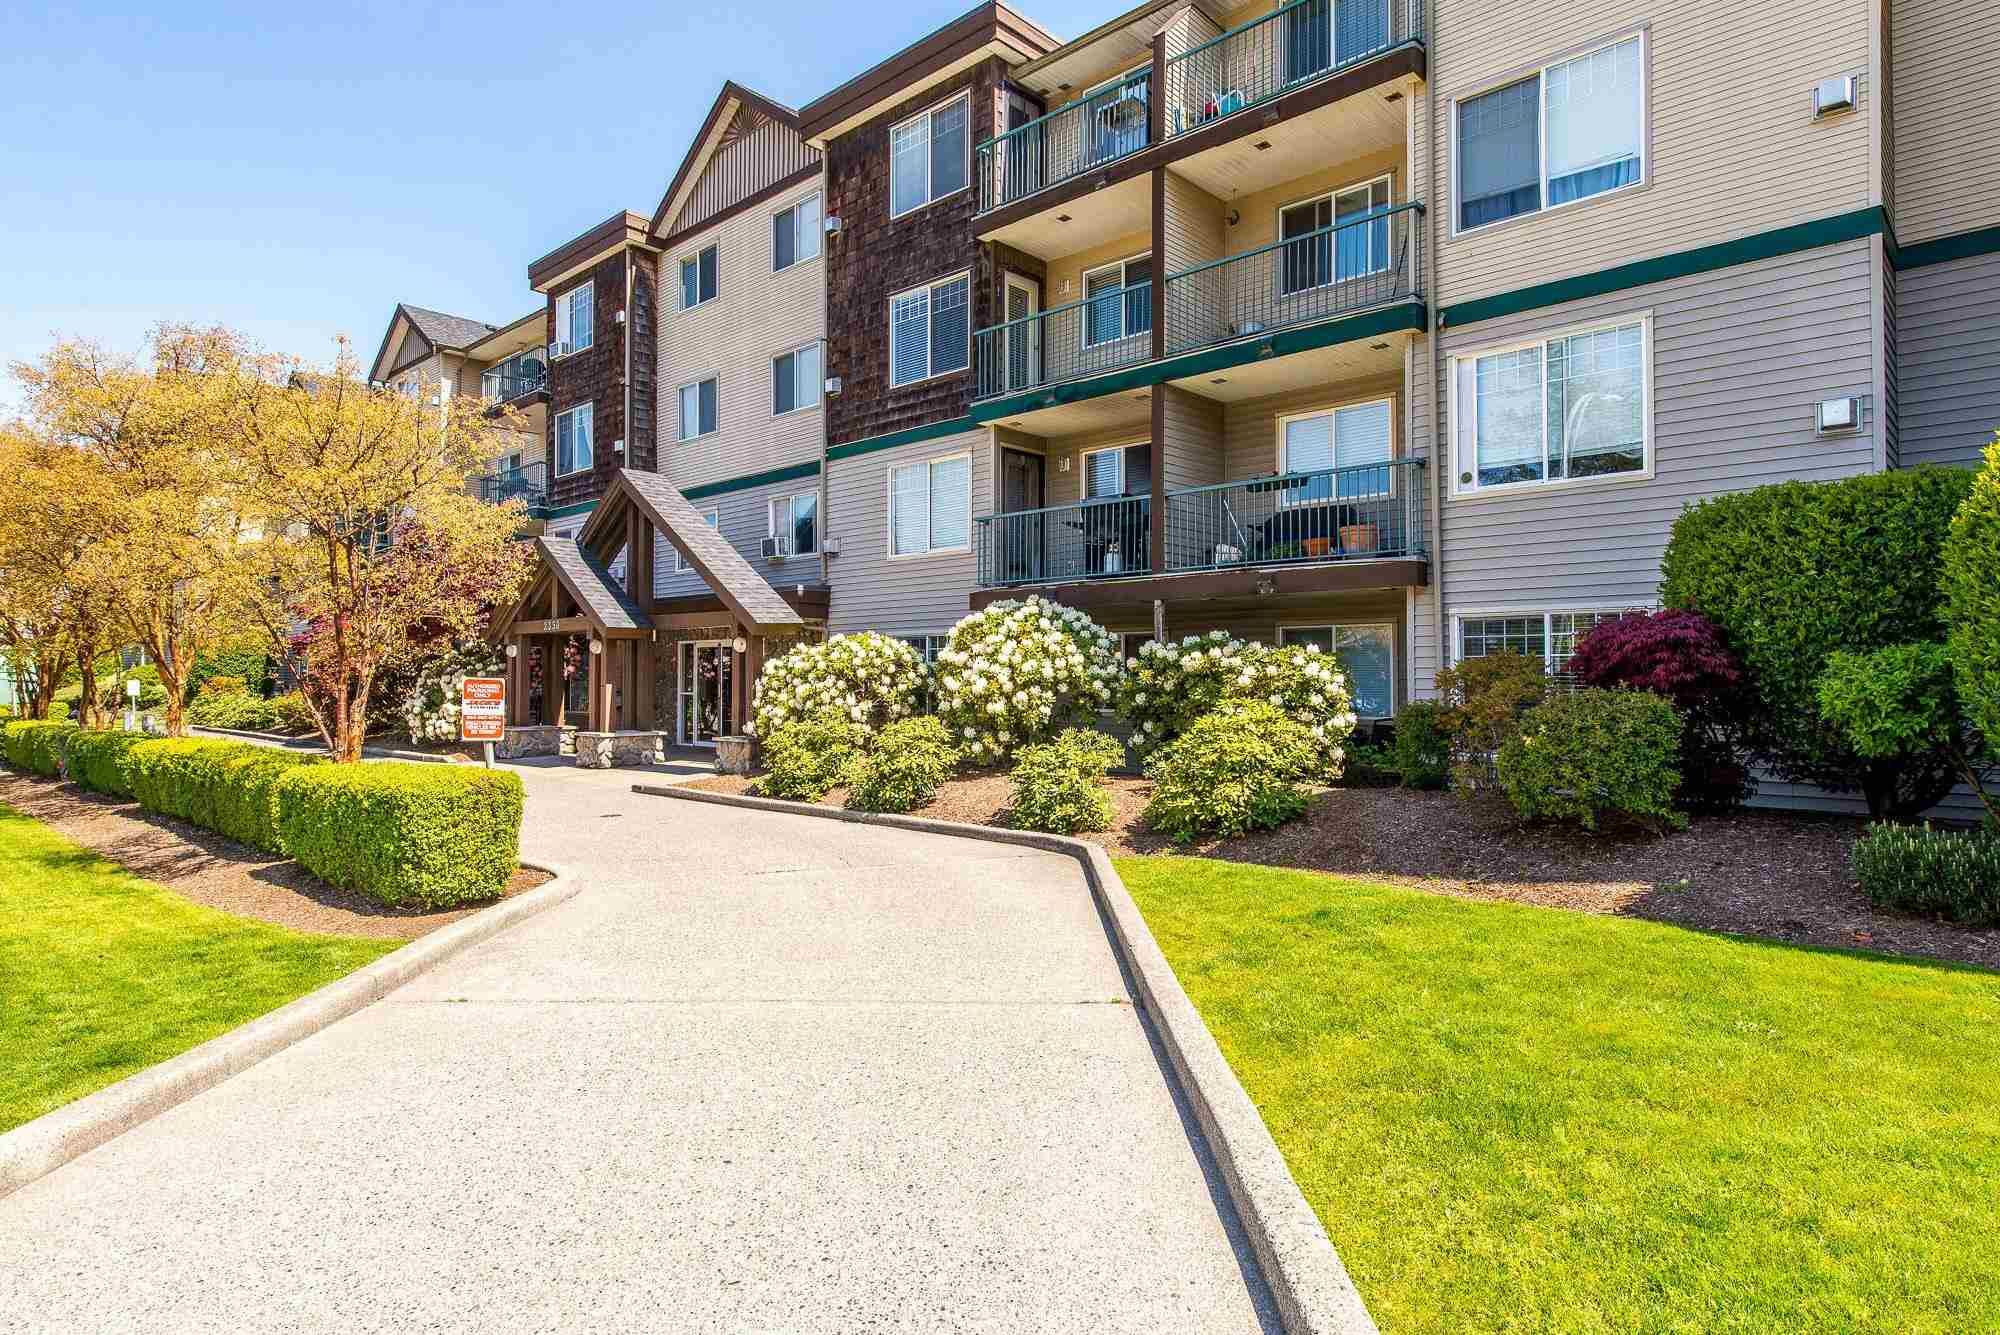 """Main Photo: 208 2350 WESTERLY Street in Abbotsford: Abbotsford West Condo for sale in """"Stonecroft Estates"""" : MLS®# R2596451"""